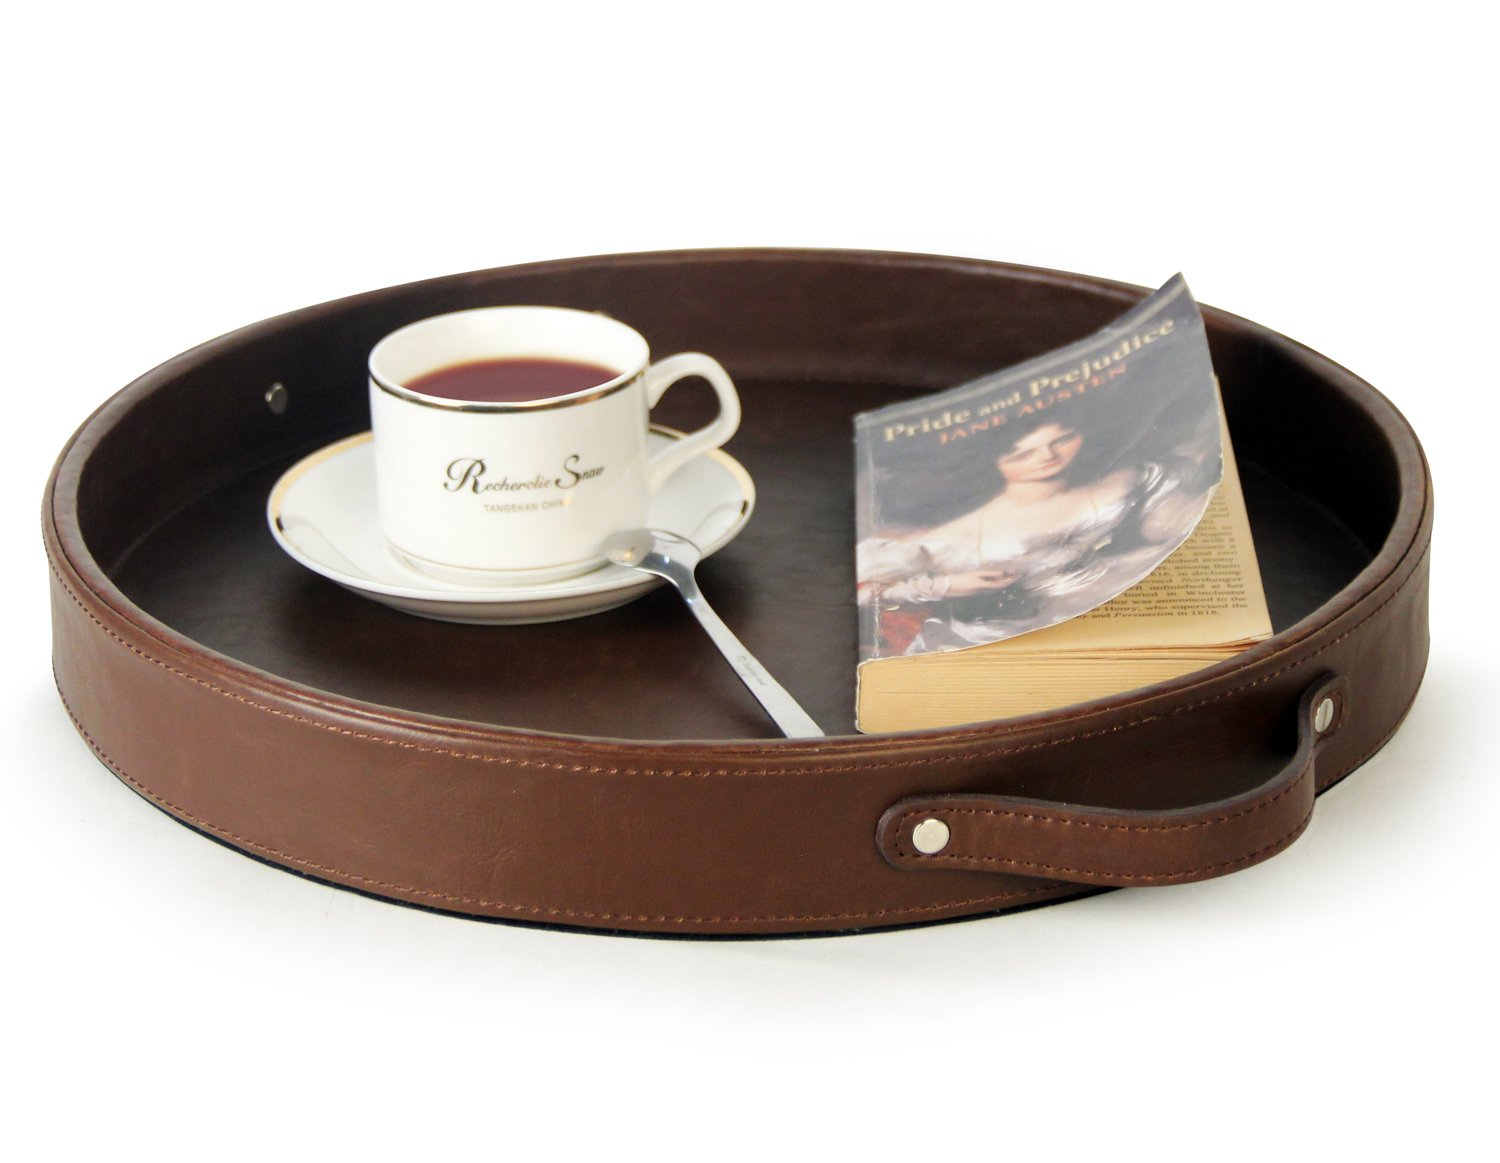 Ms.Box PU Leather Round Serving Tray with Handles, Brown